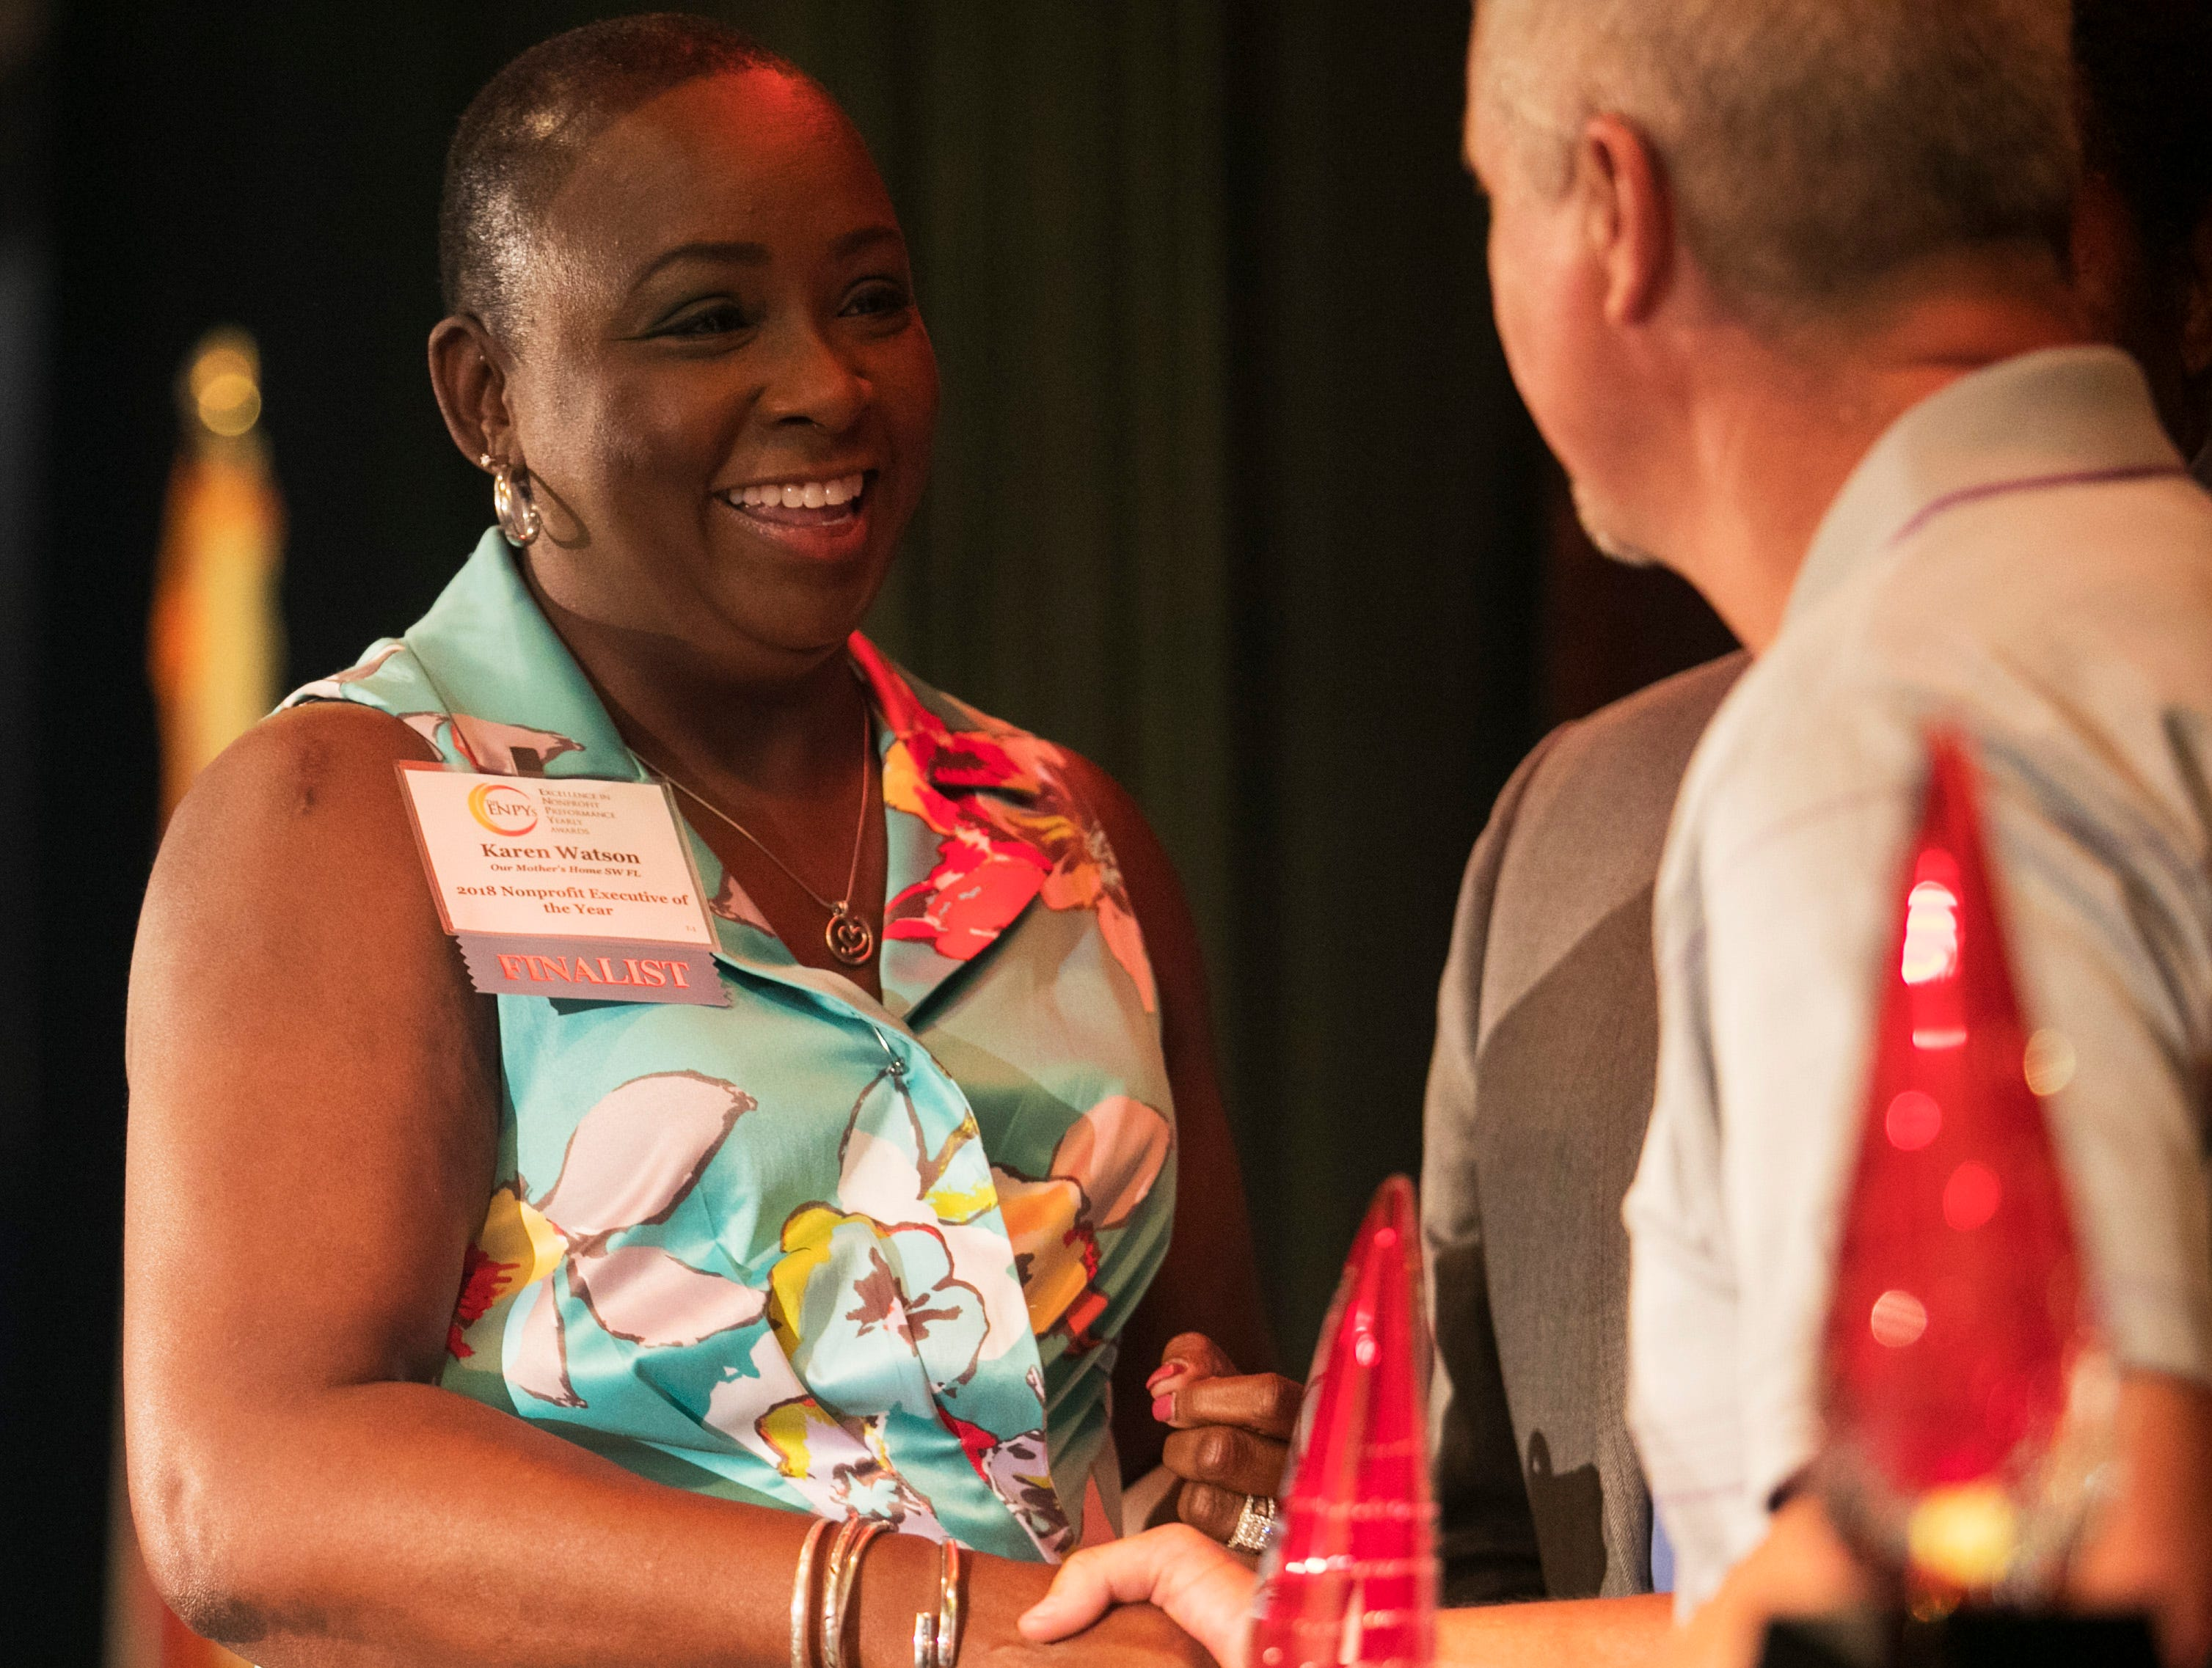 Karen Watson of Our MotherÕs Home accepts her award for 2018 Nonprofit Executive of the Year at the Excellence in Nonprofit Performance Yearly Awards on Tuesday, October 9, 2018, in Fort Myers.